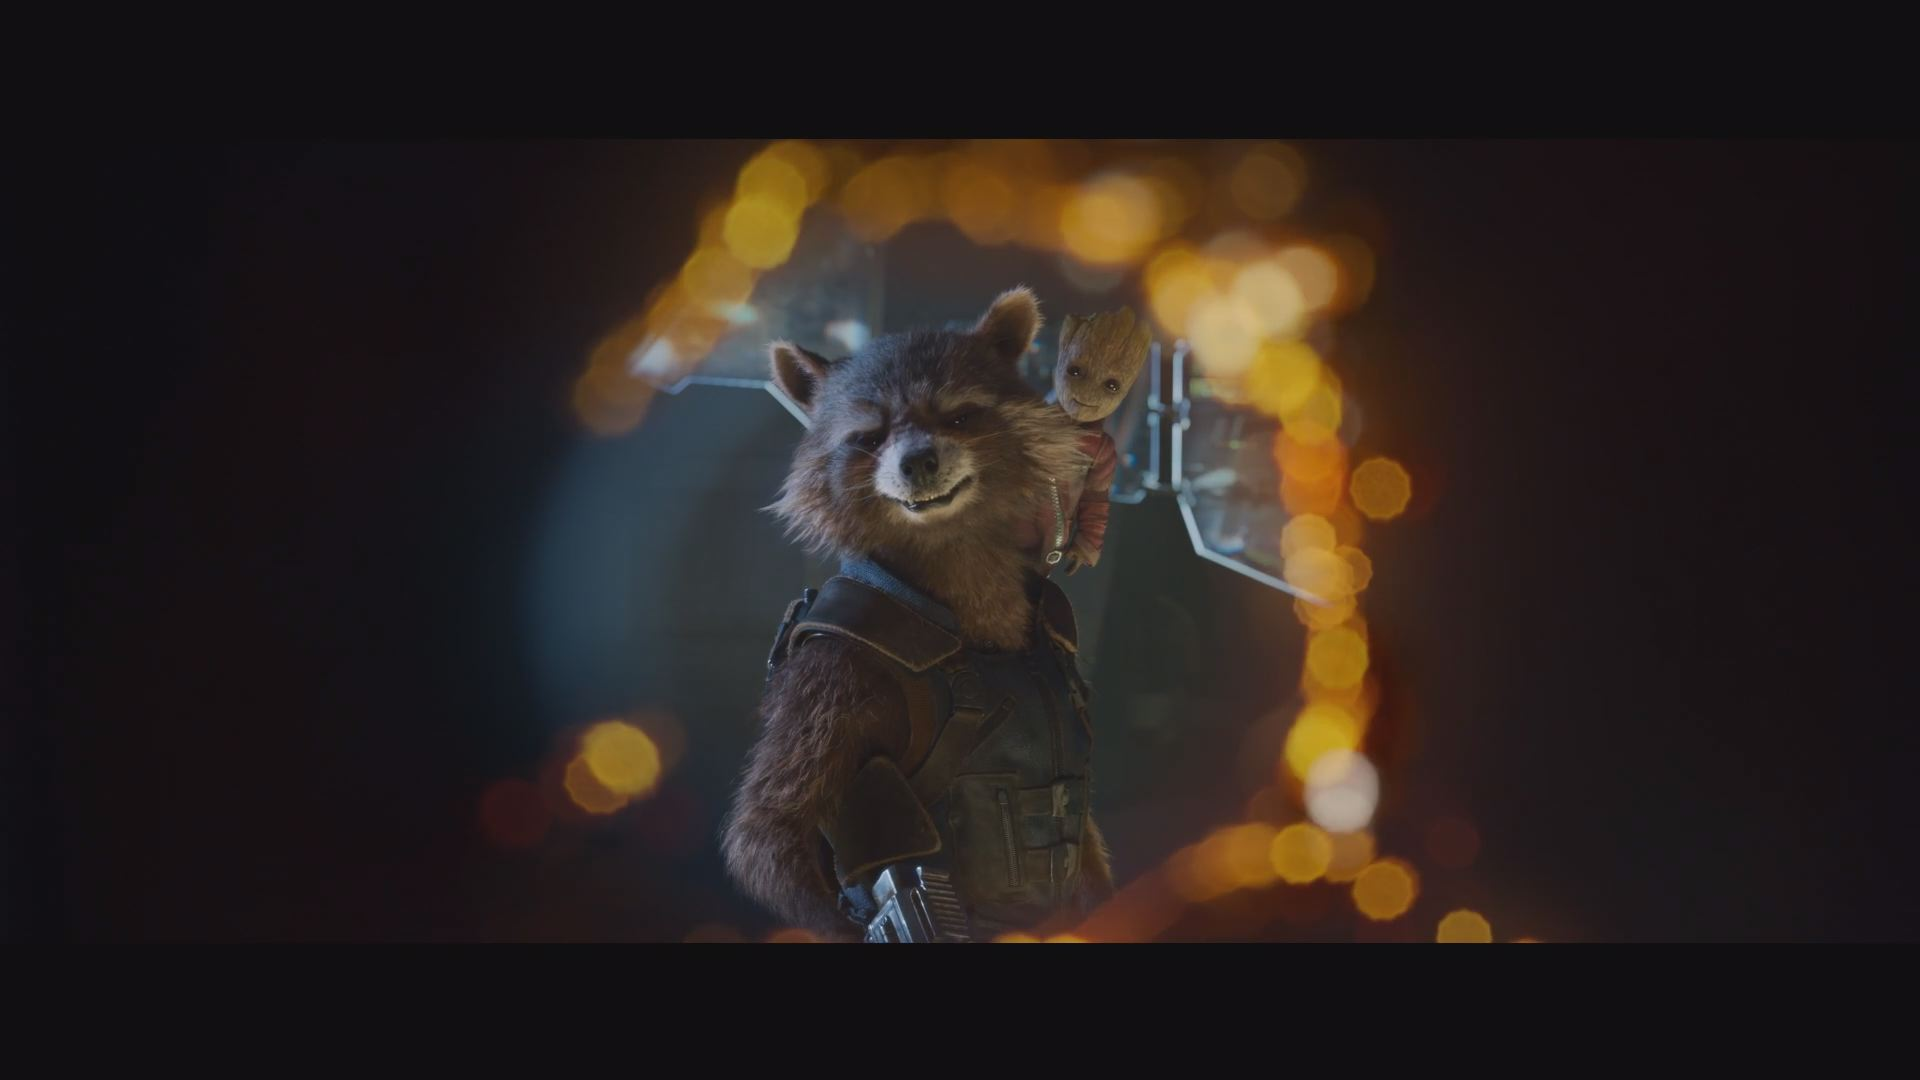 Star Lord looking to the great beyond